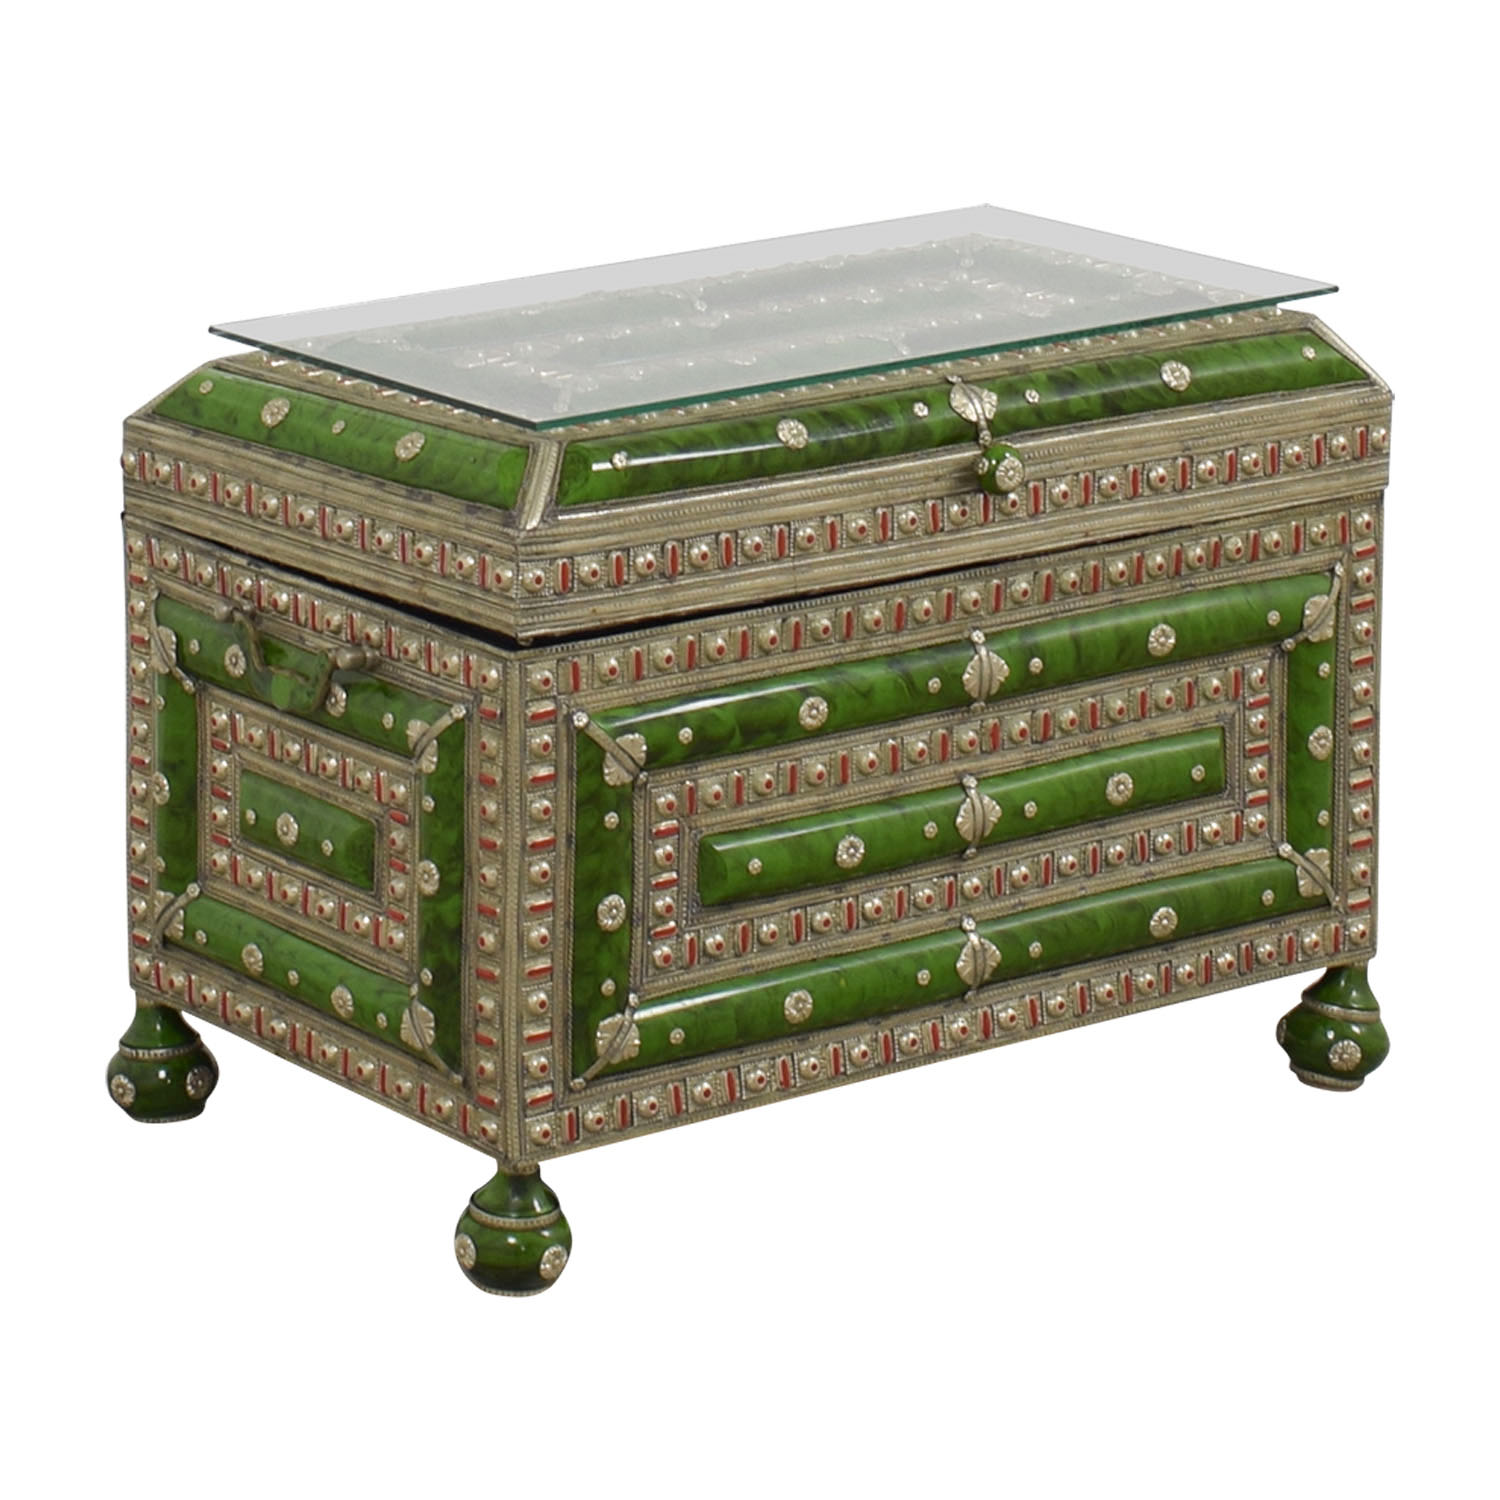 buy Antique Morroccan Precious Jewel Trunk and Table Storage